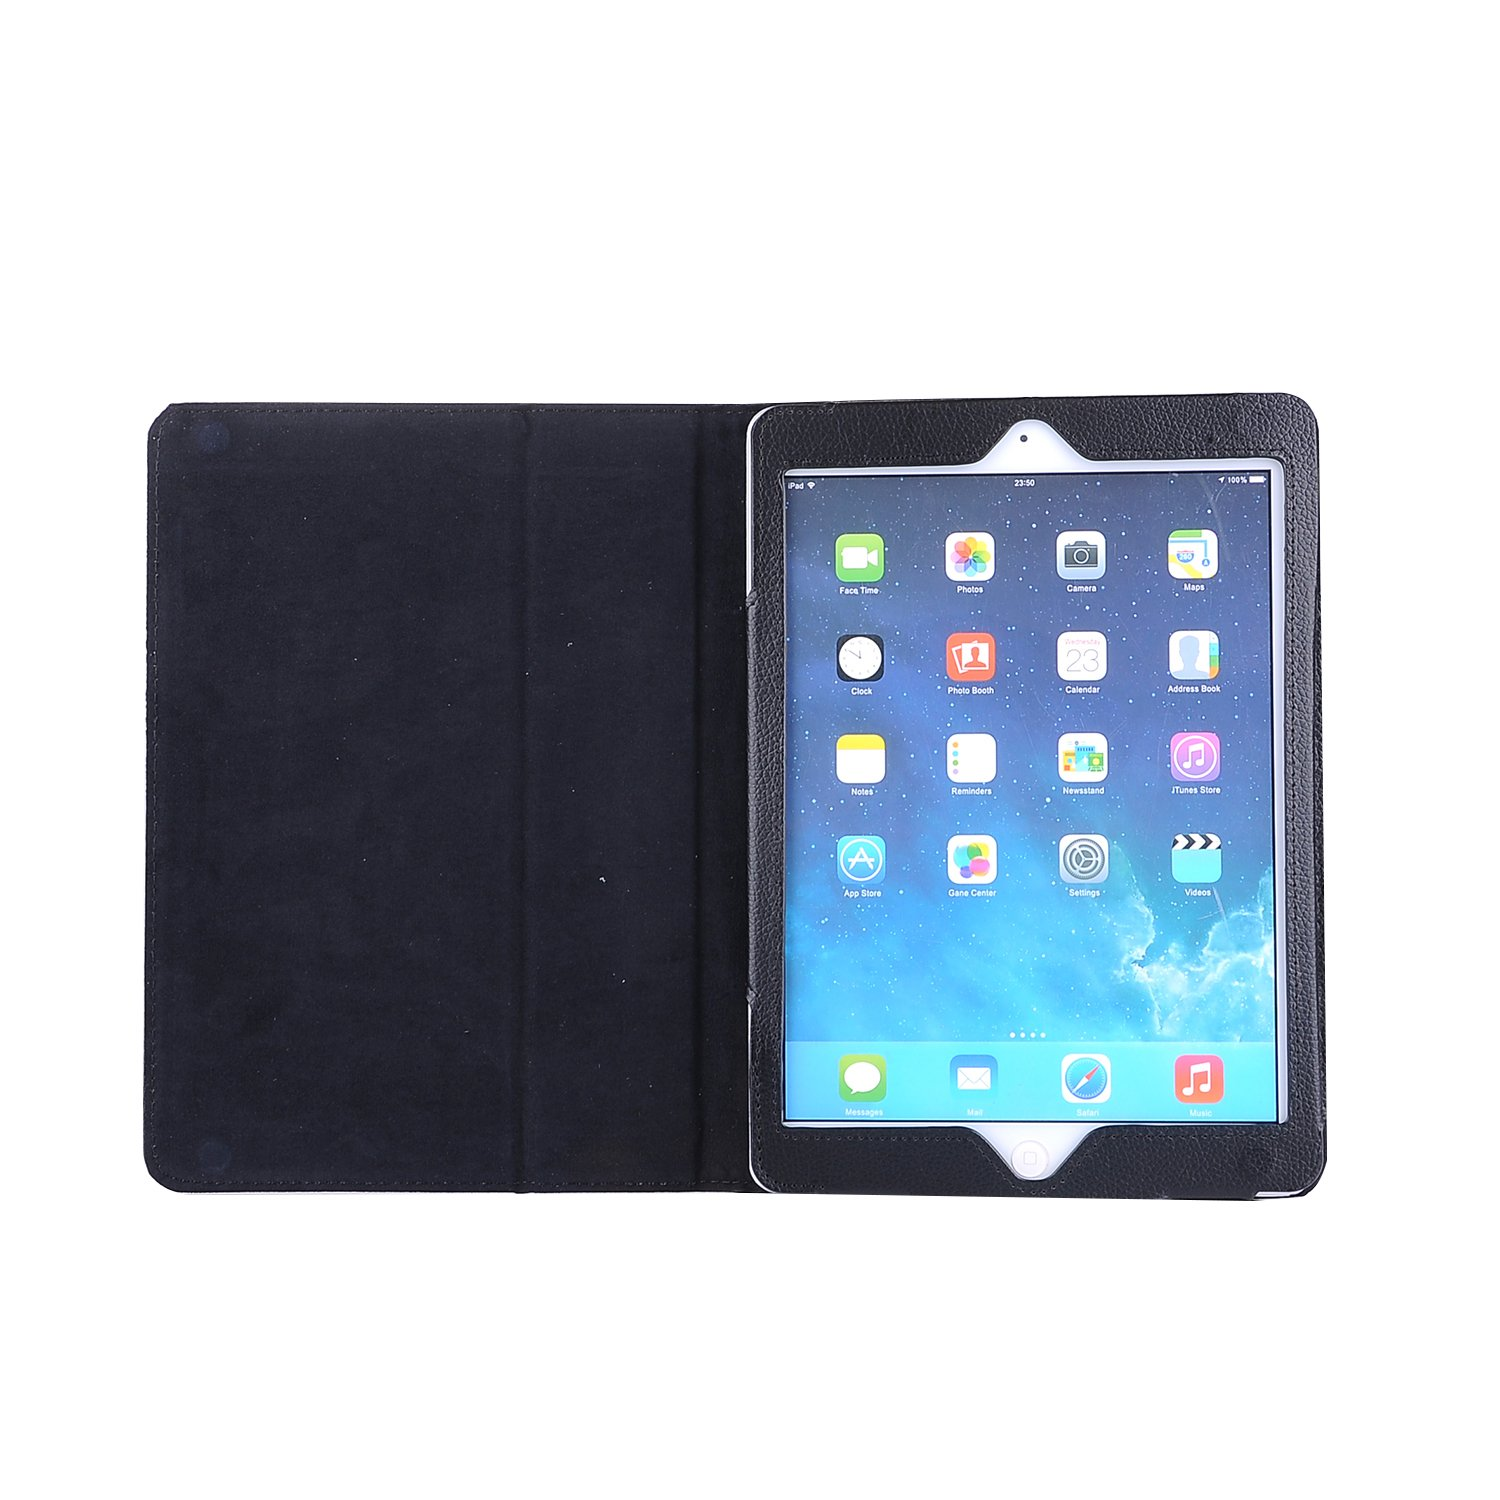 A2197 Foilo-Stand A2232 iPad Case A2200 Funda Tablet 7th Apple Cover Capa for